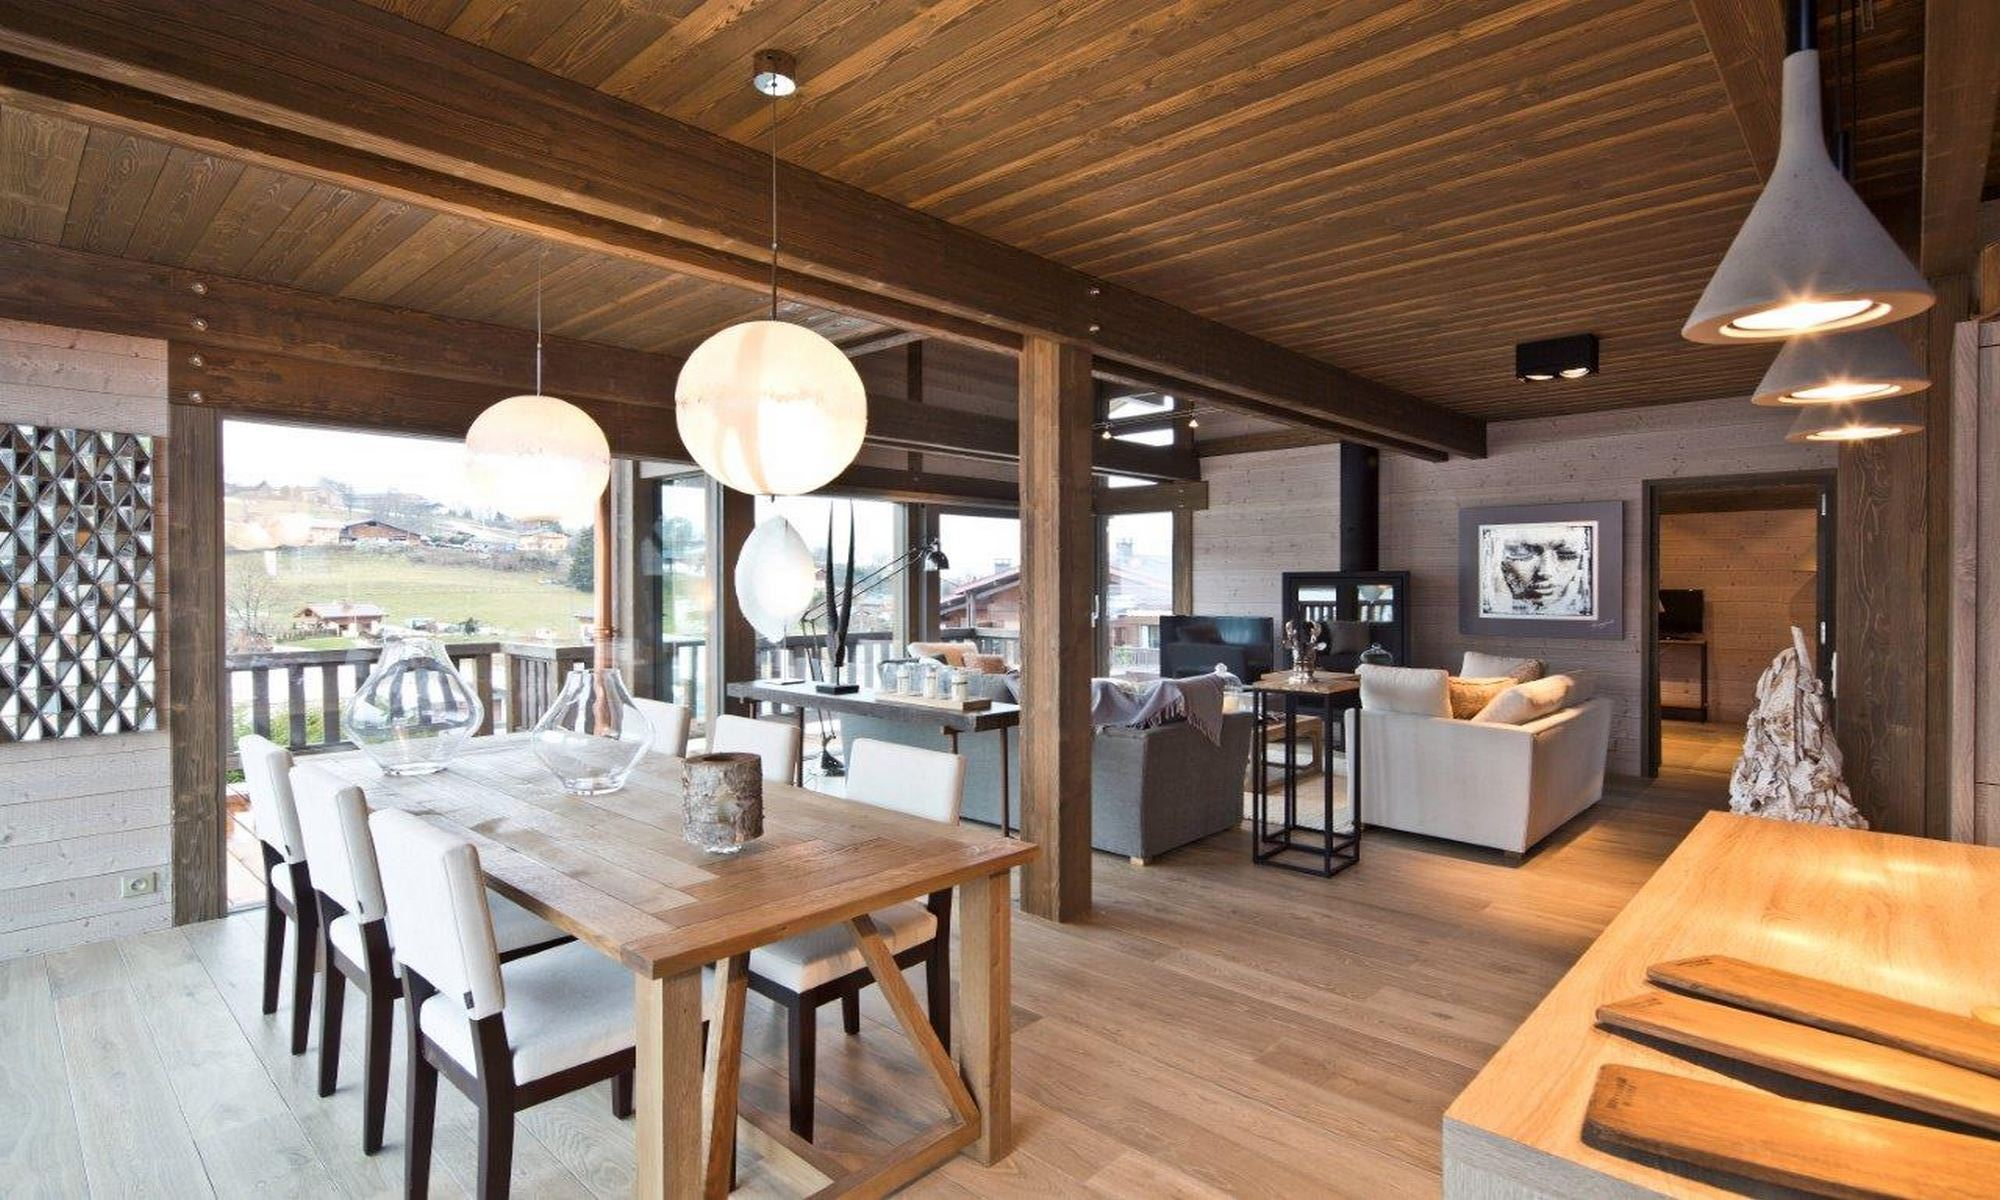 Single Family Home for Sale at Megève Demi Quartier Chalet Ebene Megeve, Rhone-Alpes 74120 France